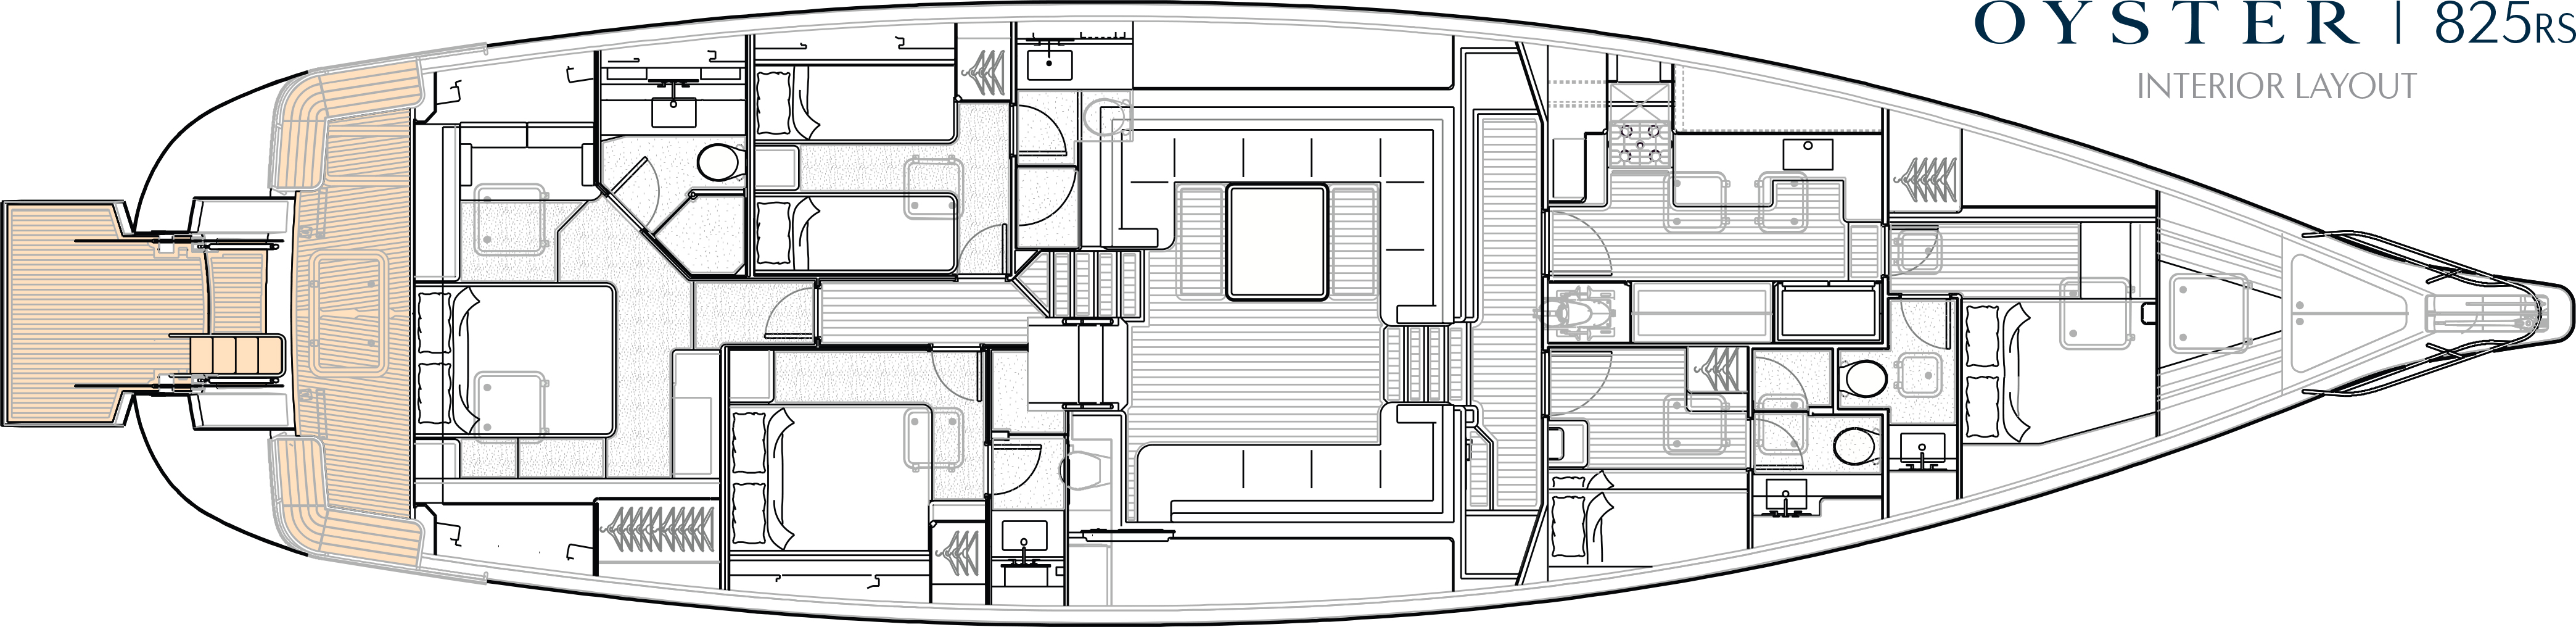 Oyster Marine 825 - oysteryachts-yachts-825_rs_typical_layout.jpg